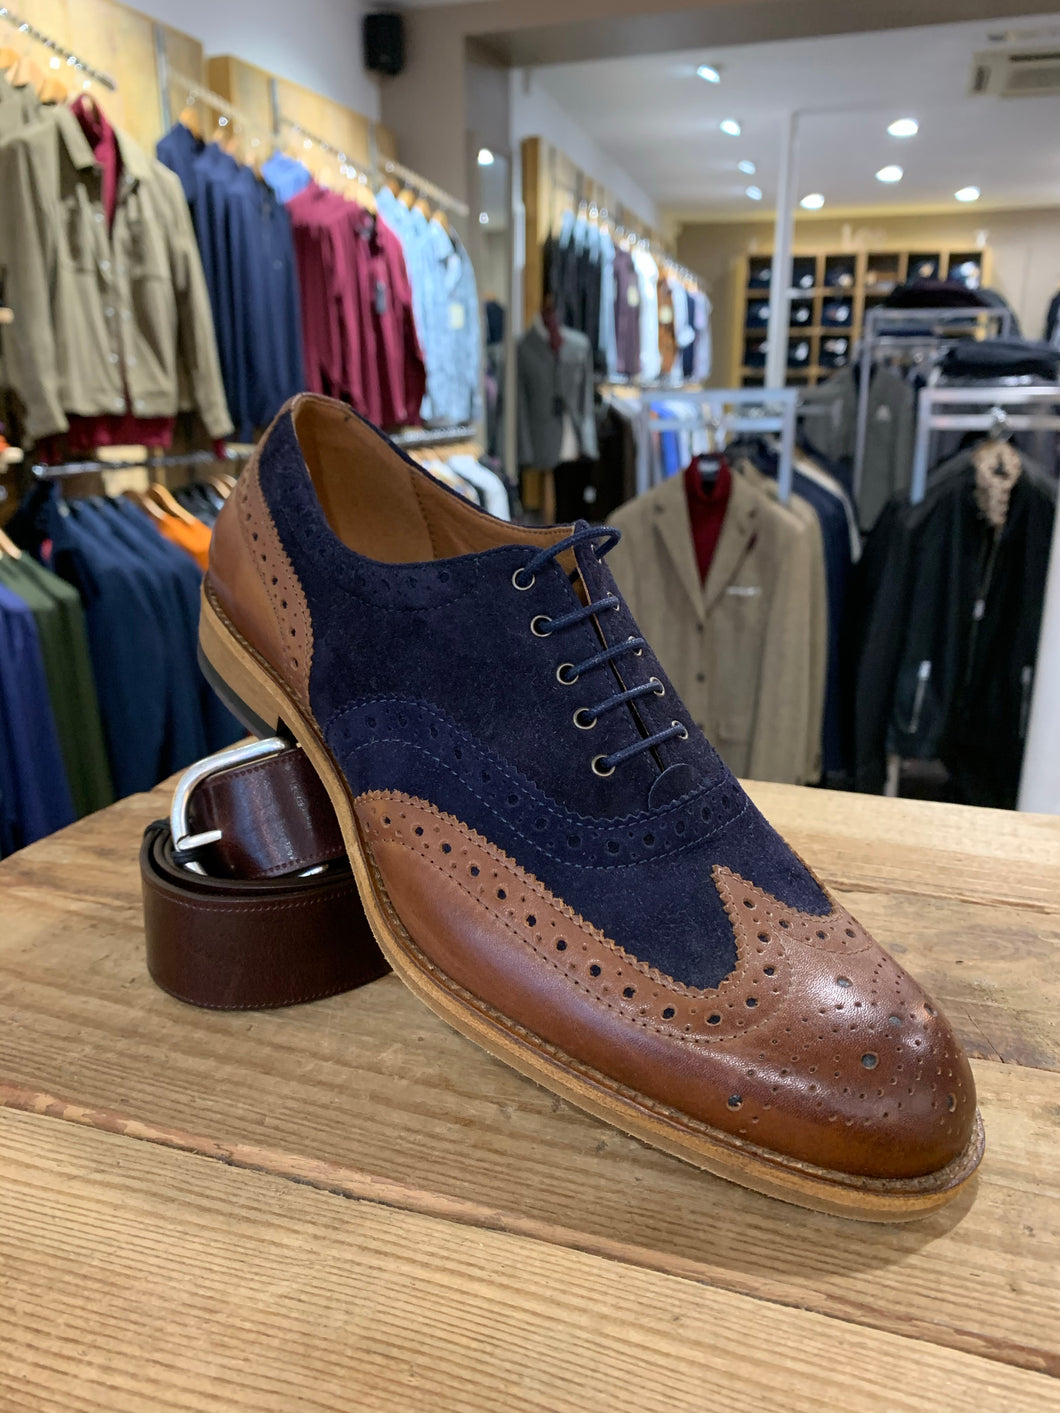 Lacuzzo tan and navy suede brogue from Gere Menswear